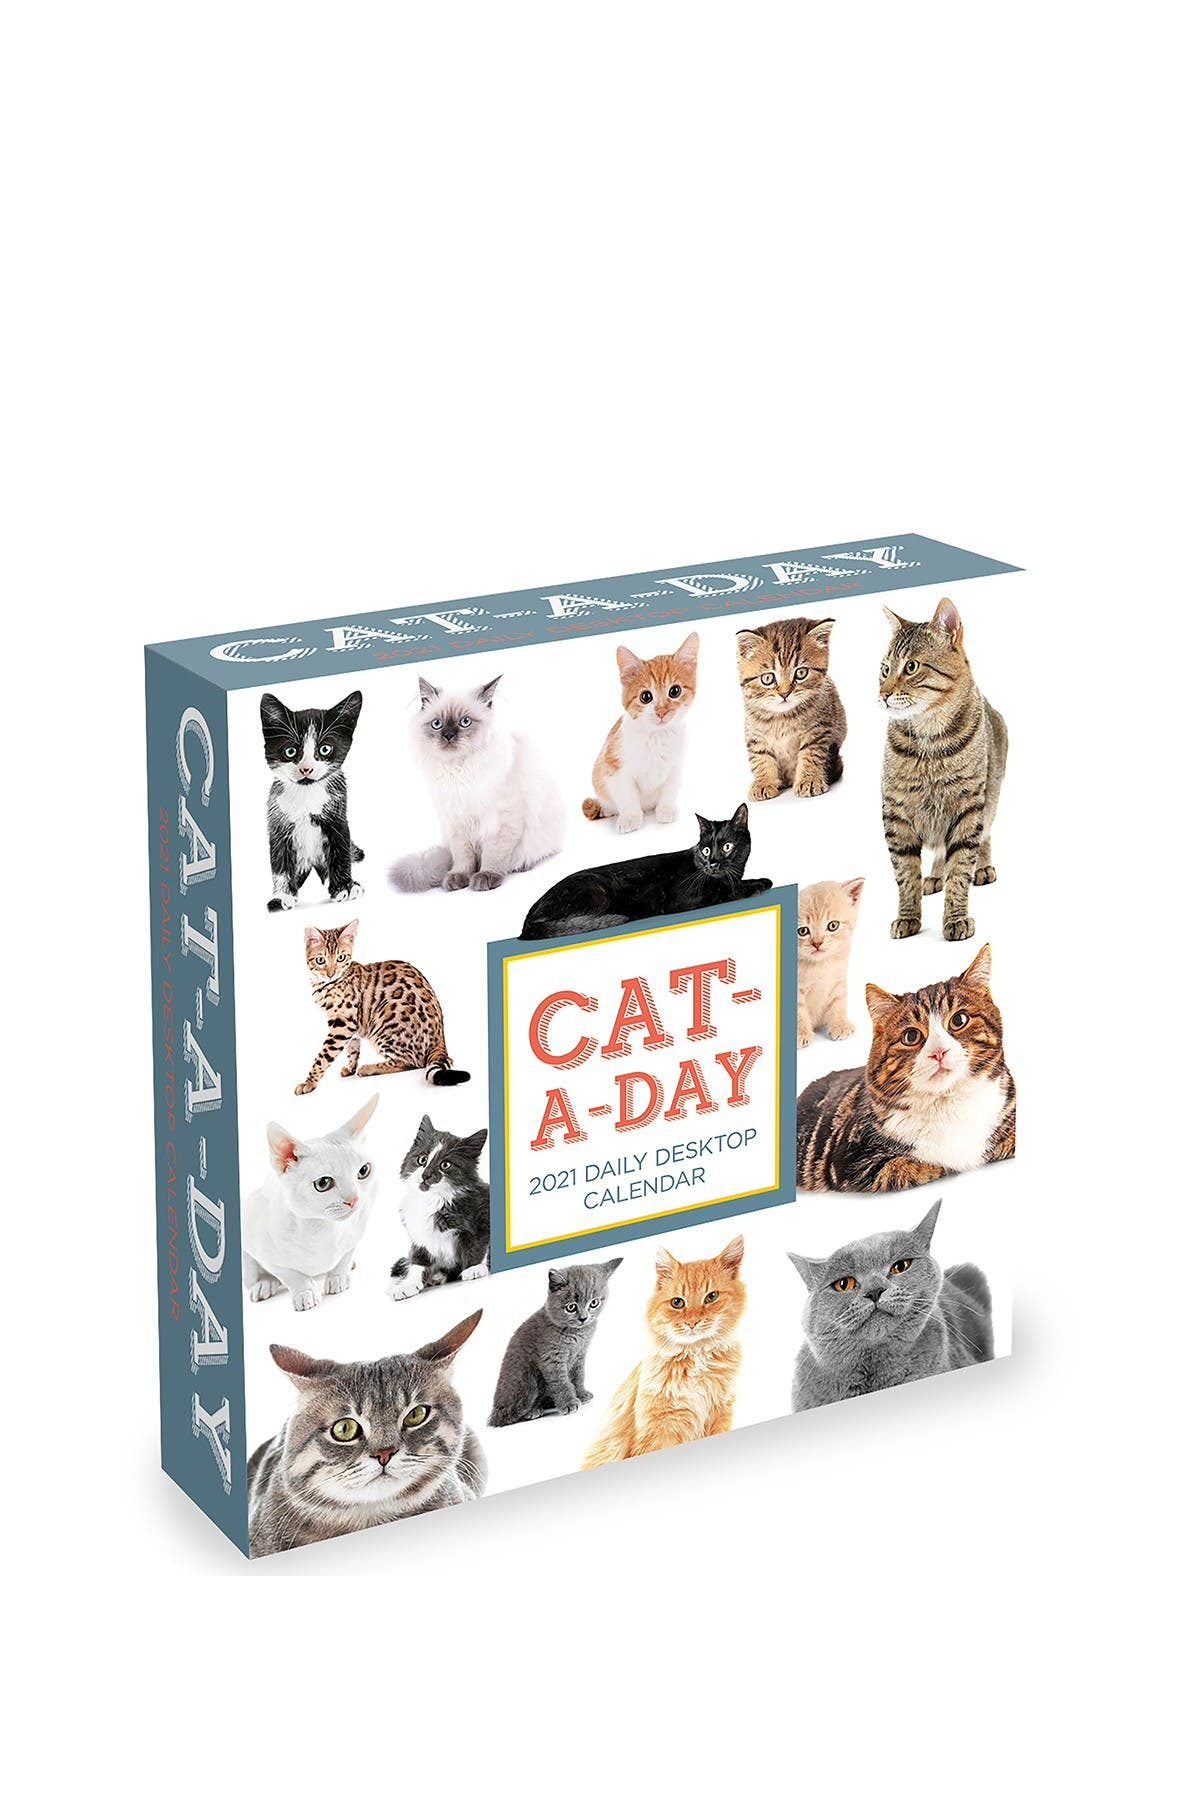 Image of TF Publishing 2021 Cat A Day Daily Desktop Calendar